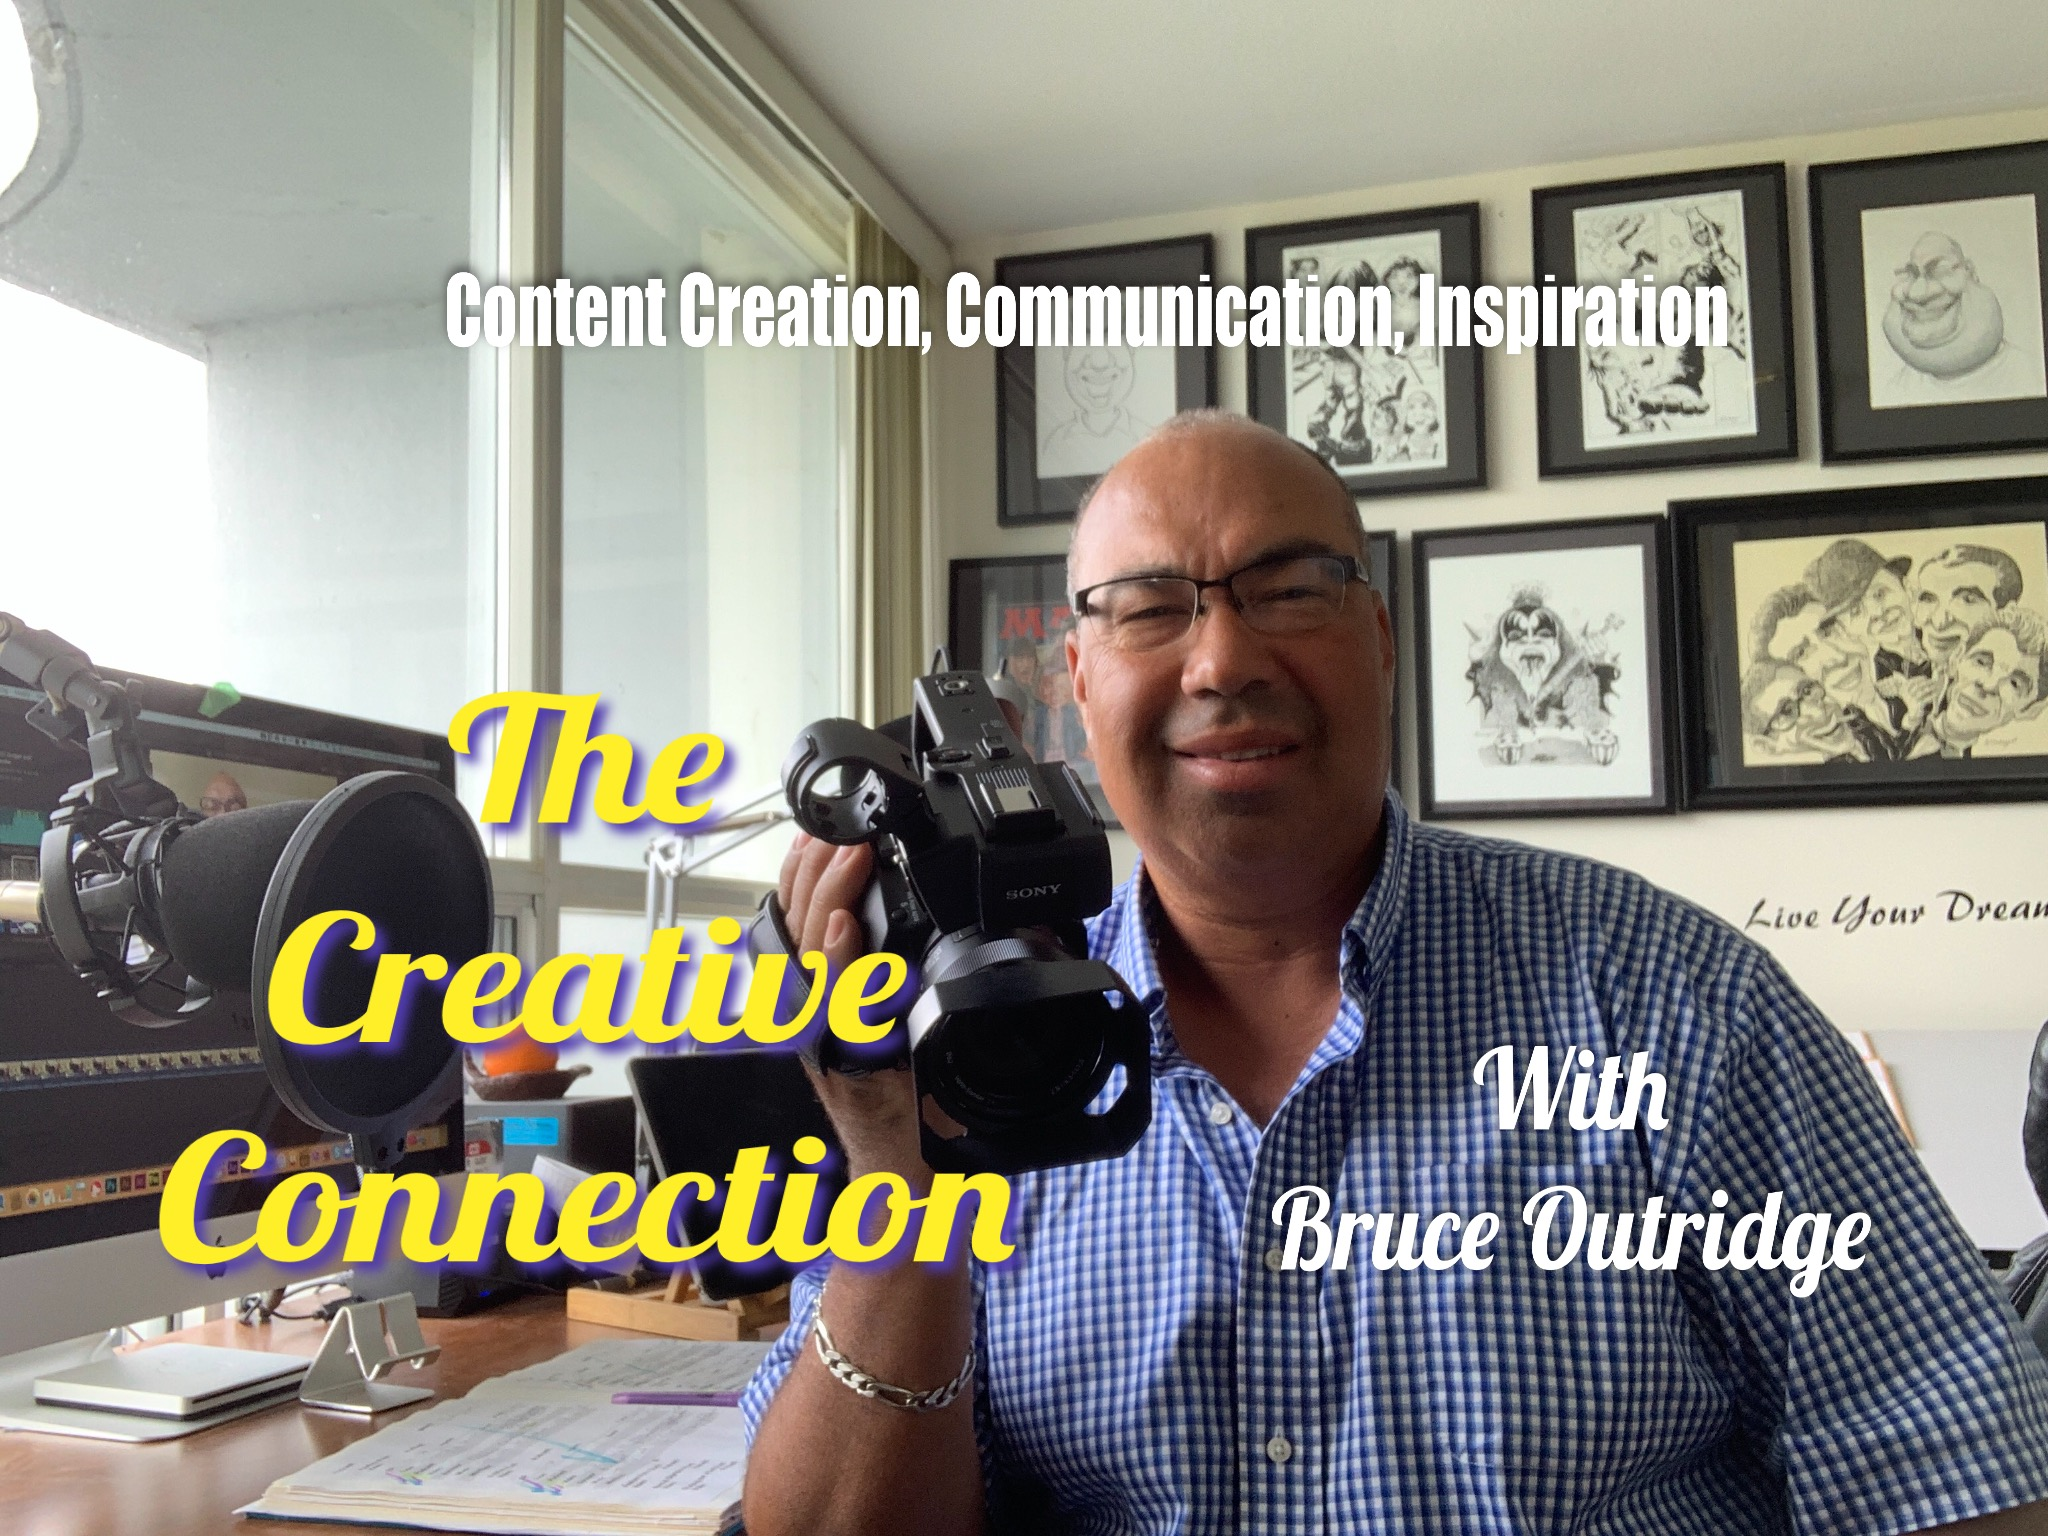 Get Marketing Tips with the Creative Connection